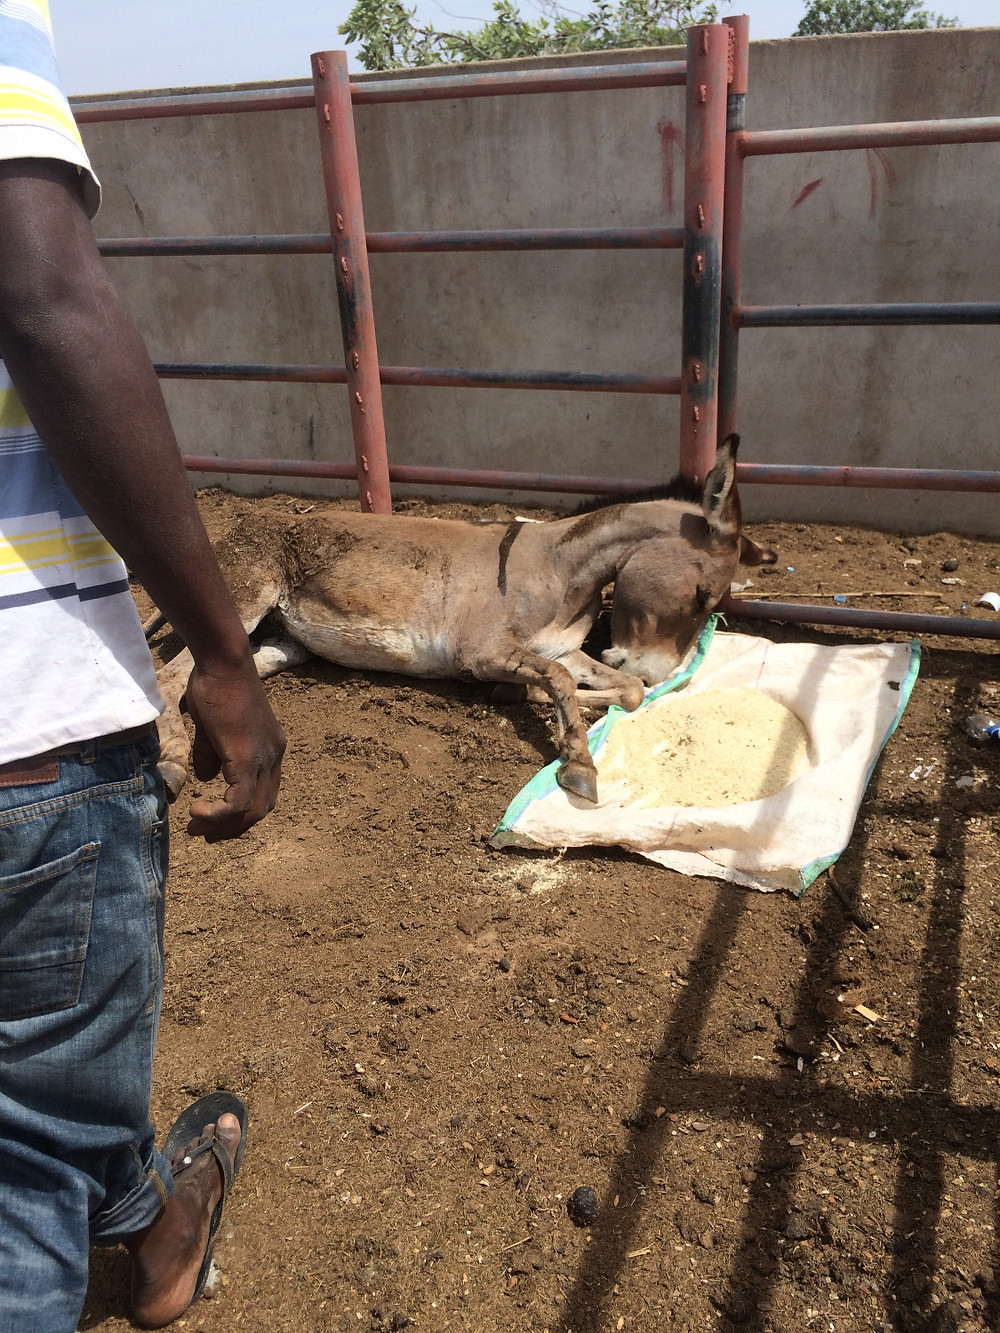 Donkey at holding facility -suffering from hunger and thirst after long hours in a truck